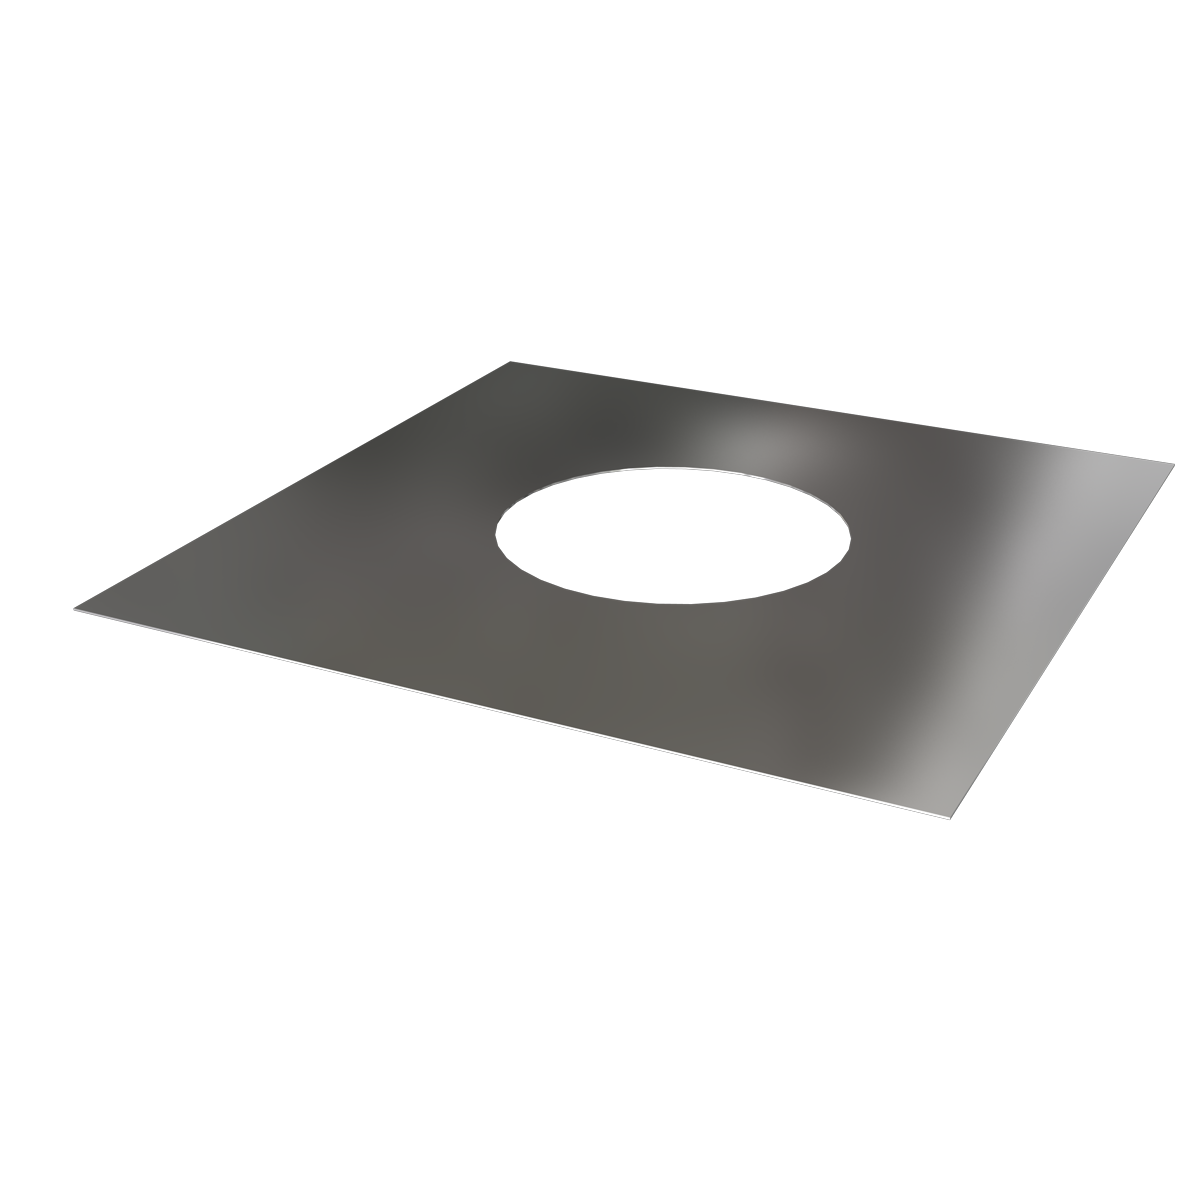 Top Fixing Plate